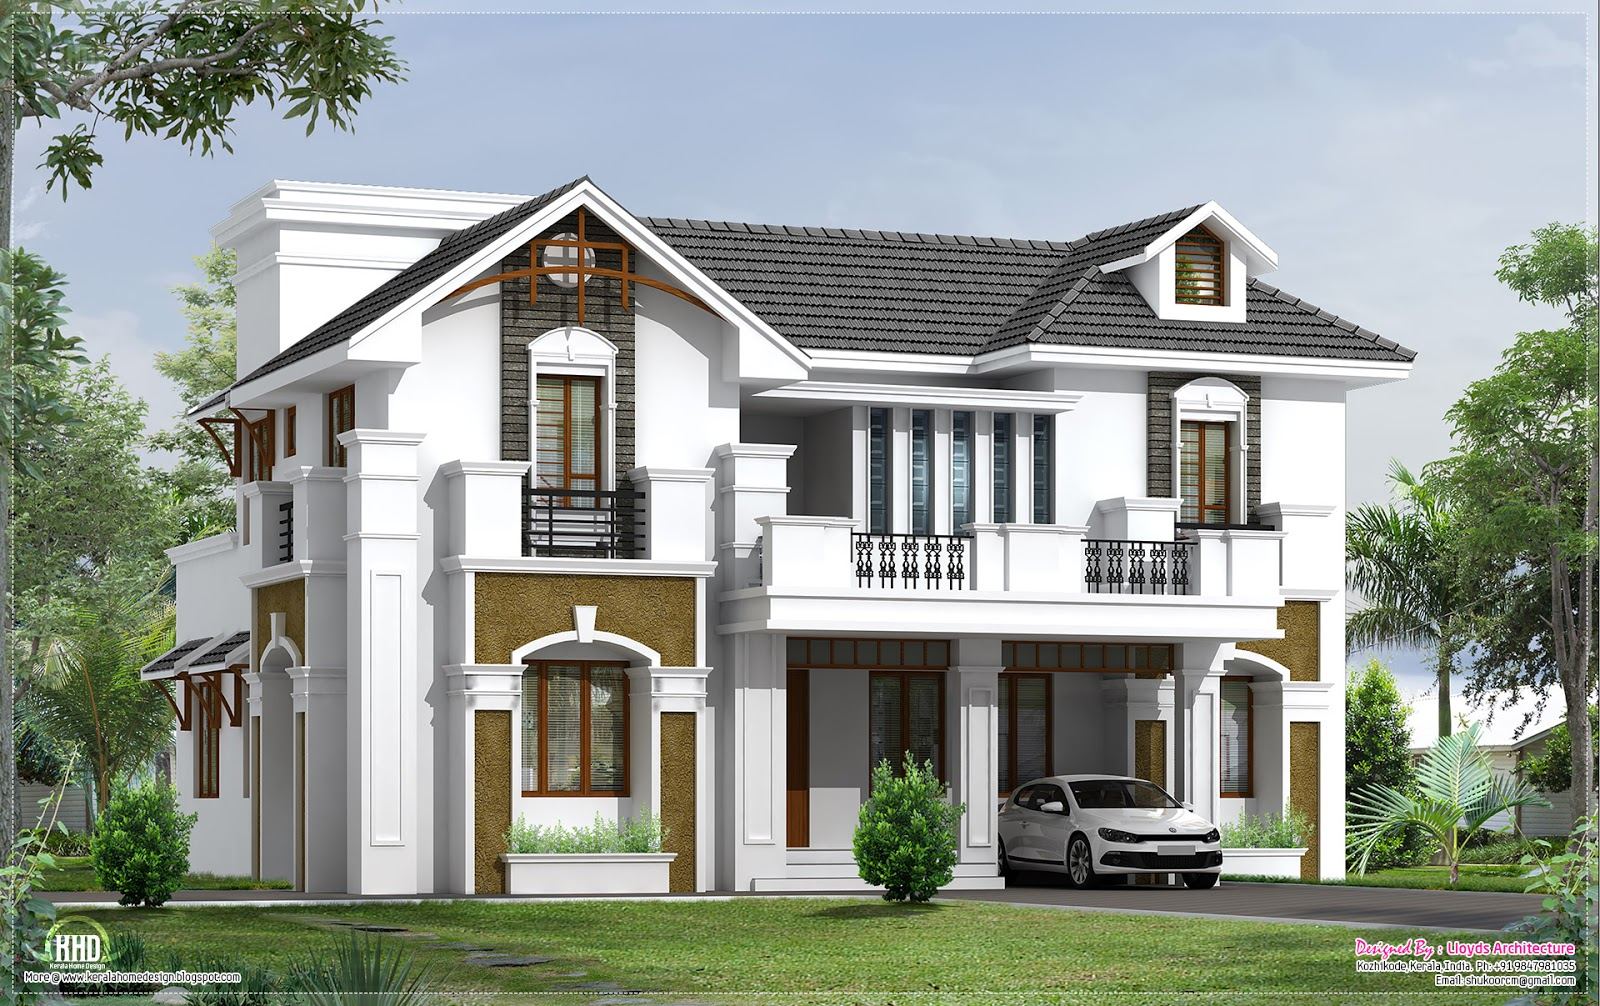 3d View Of 2200 Square Feet Villa House Design Plans